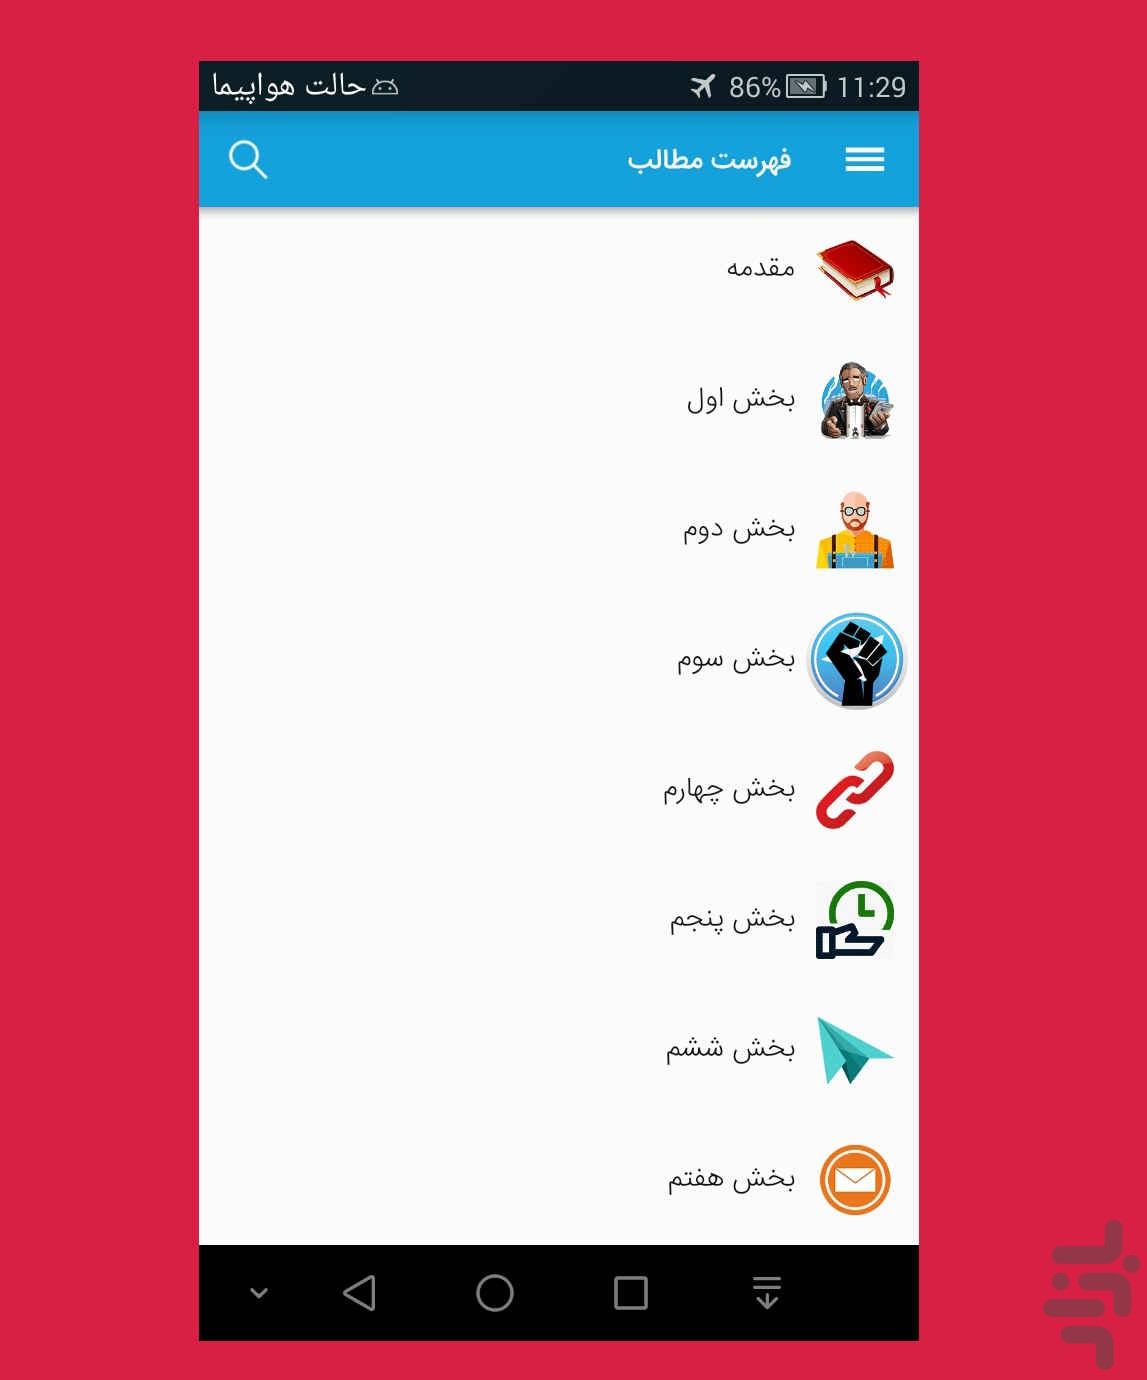 Telegram auto channel manager for Android - Download | Cafe Bazaar